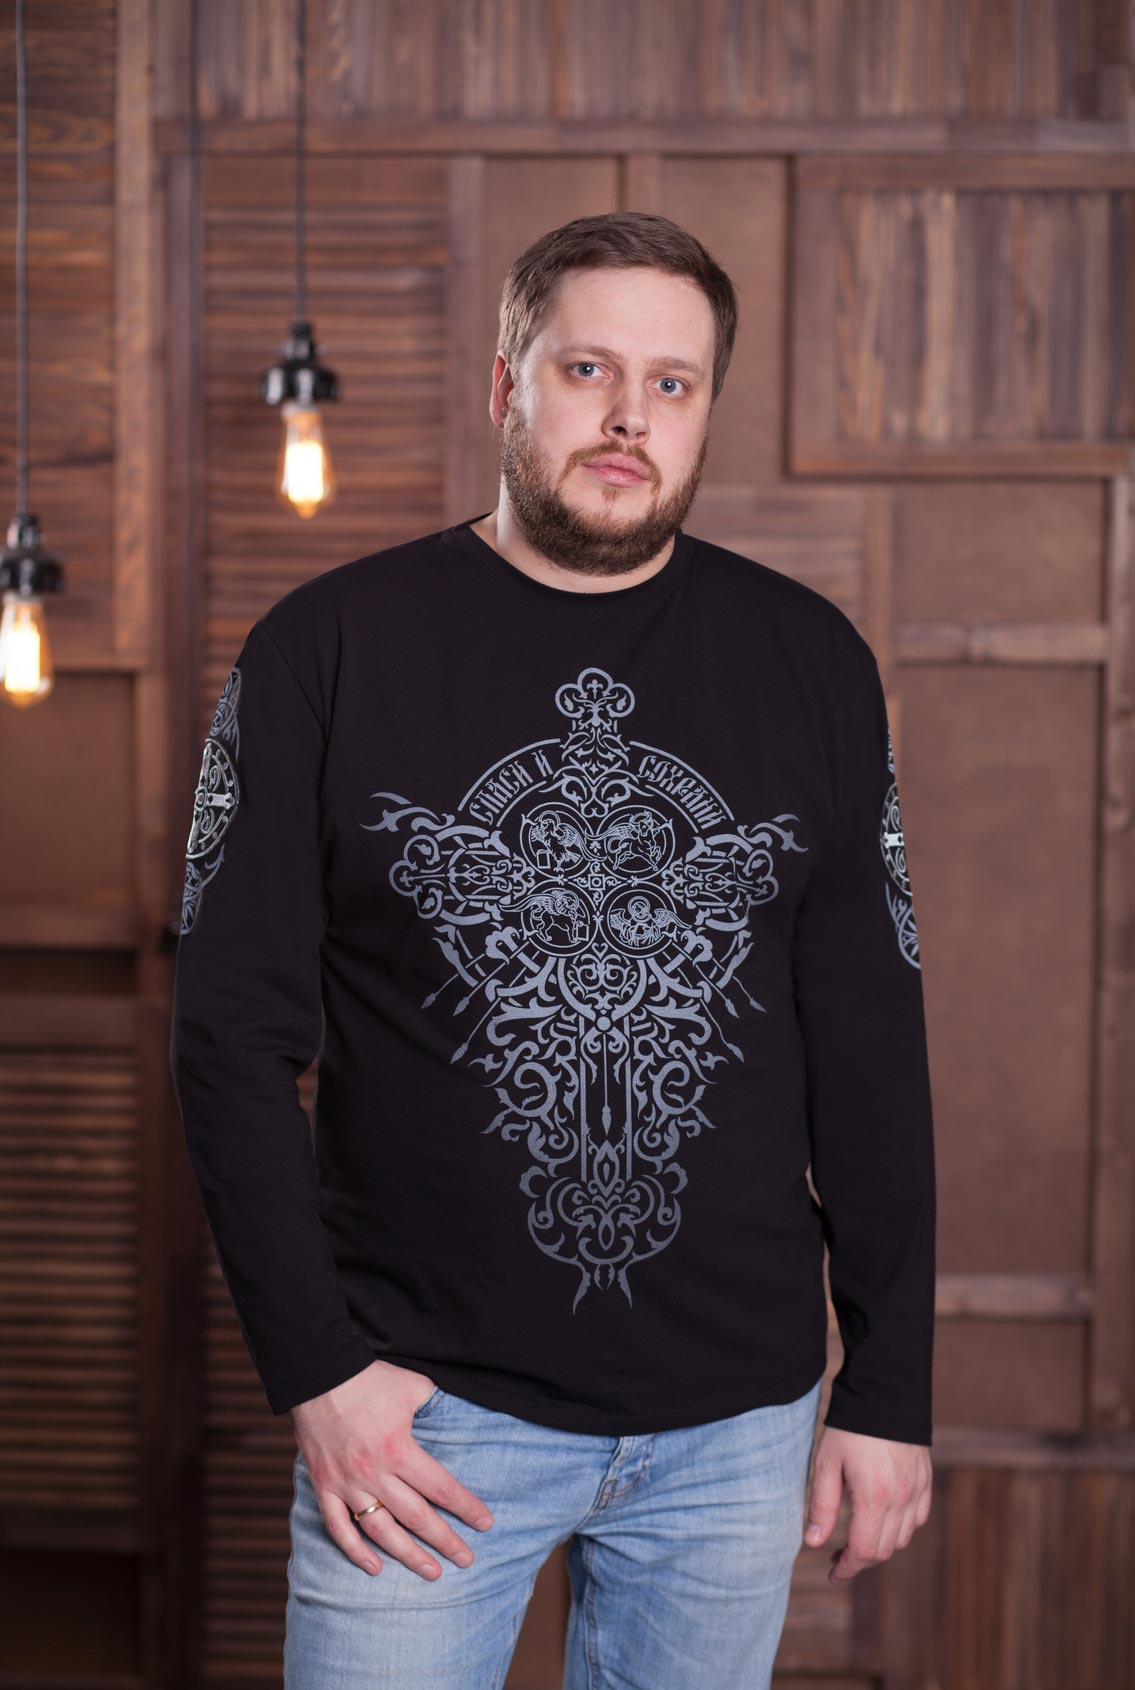 лонгслив Спаси и сохрани, long sleeve shirt